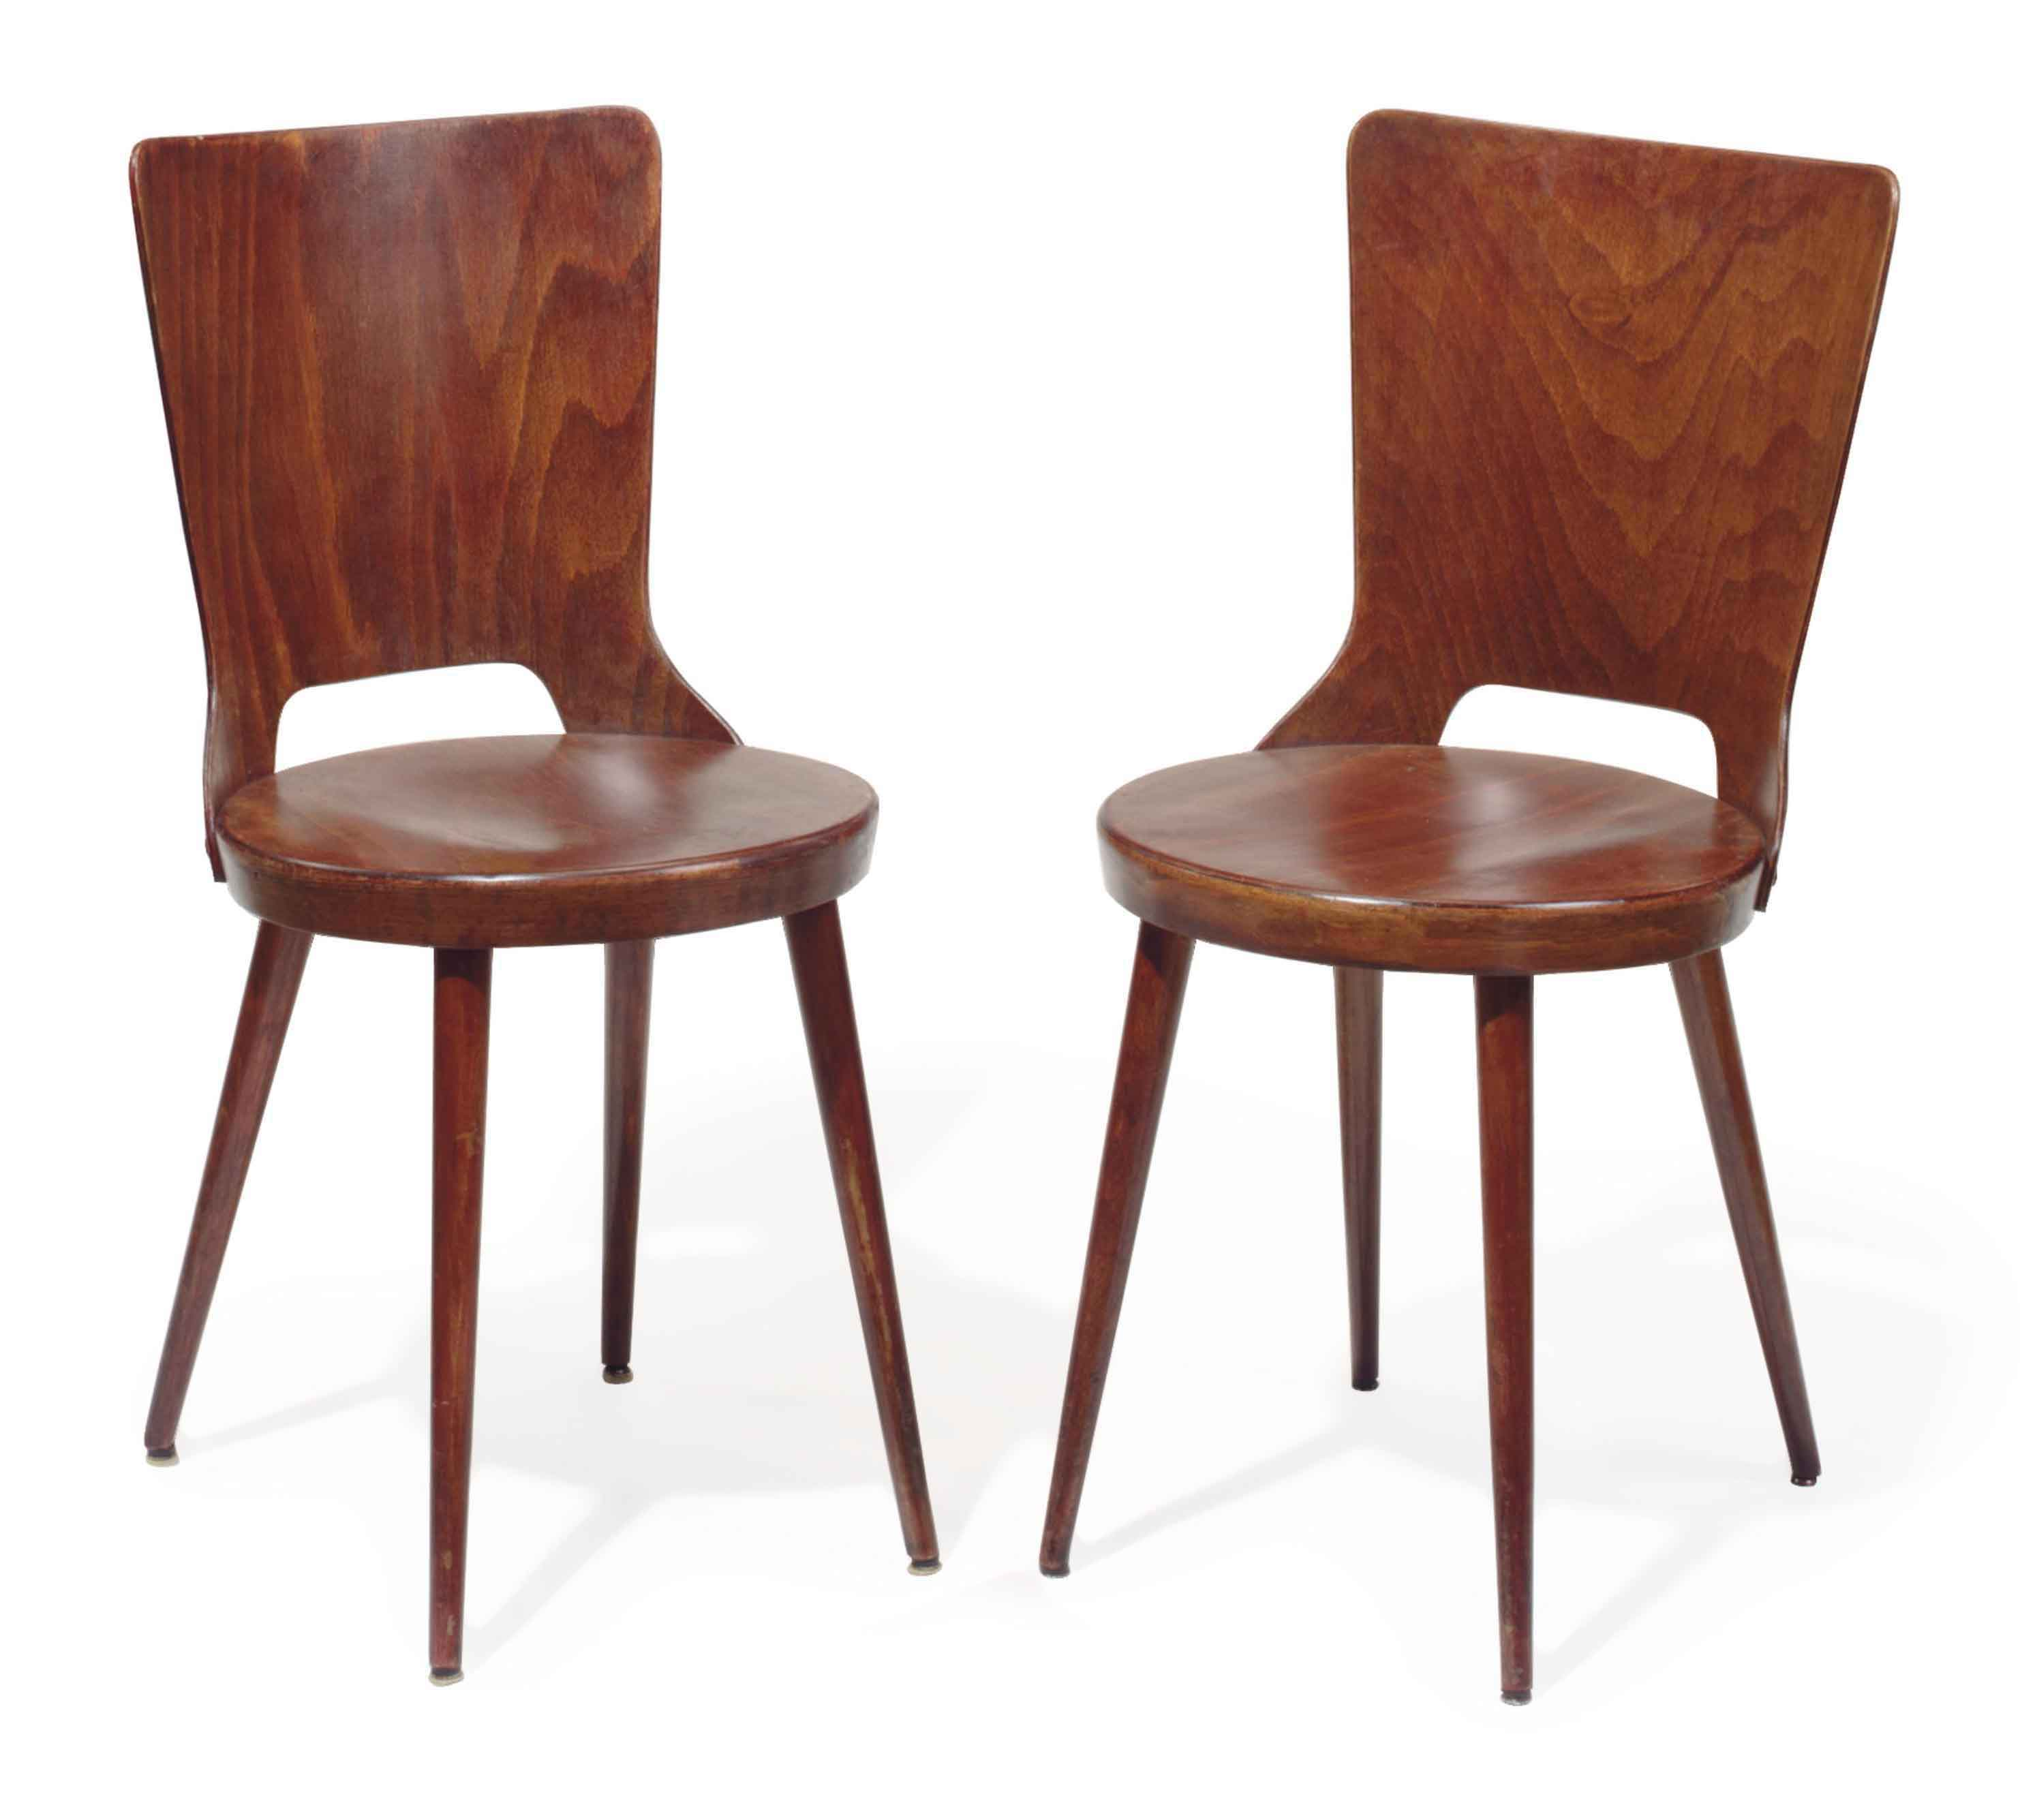 A PAIR OF STAINED OAK BISTRO CHAIRS,